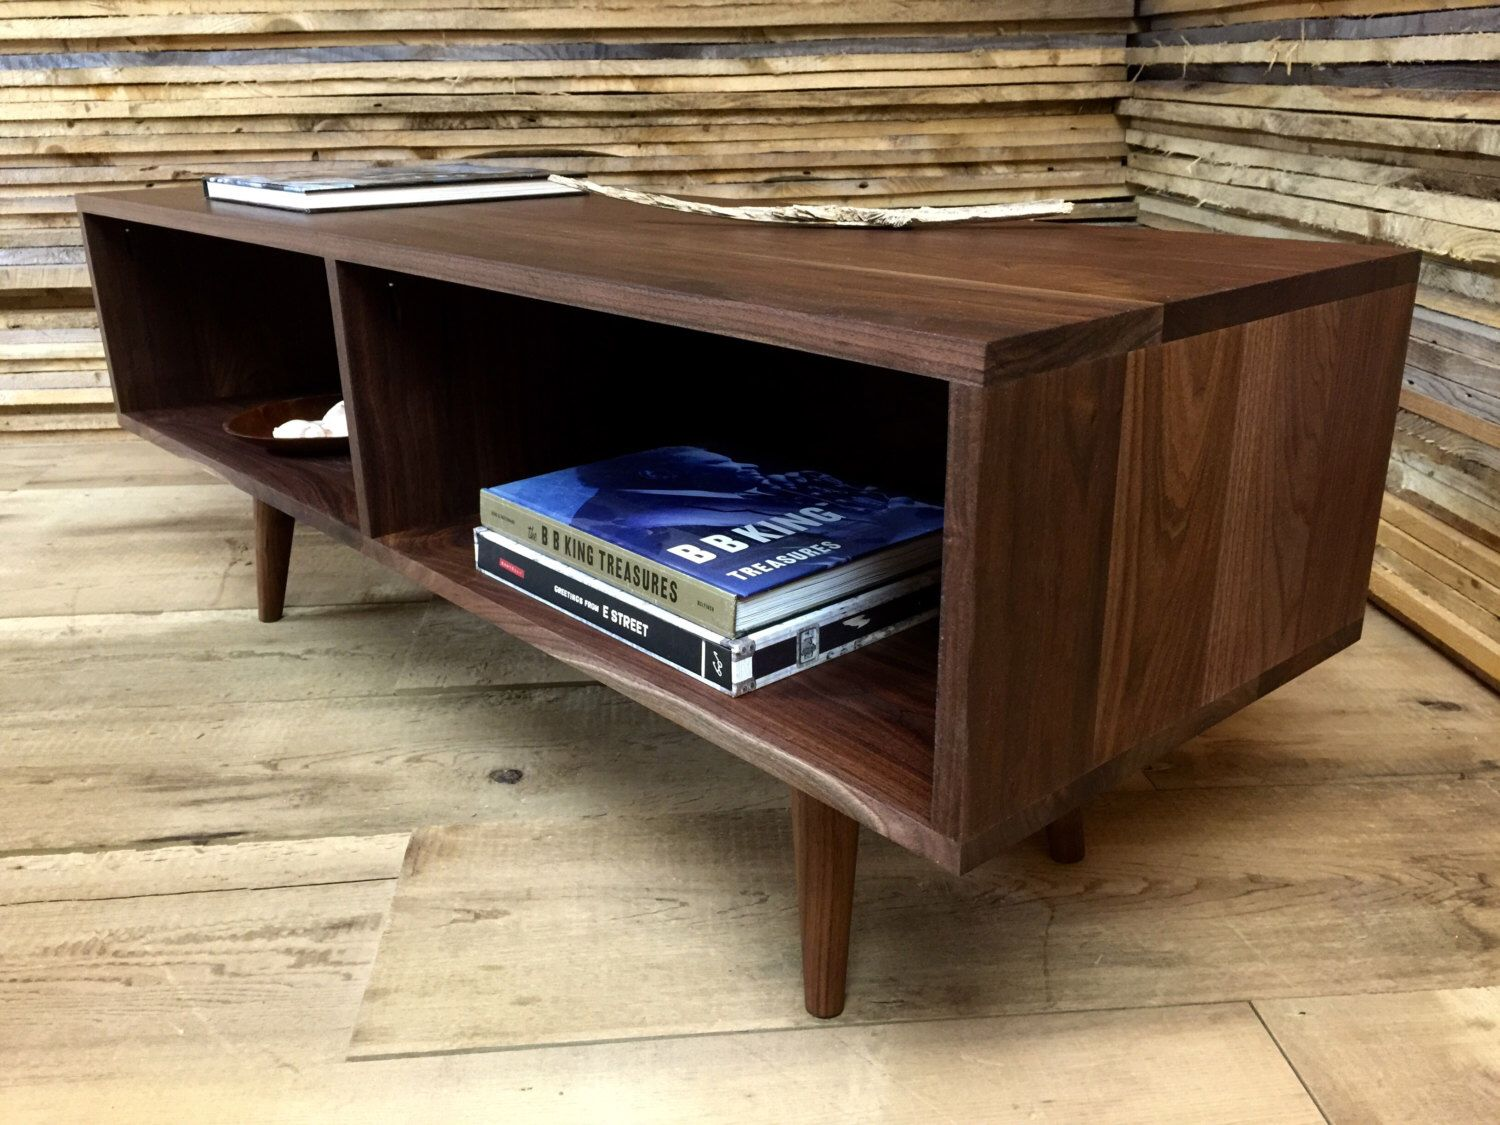 Cameron mid century modern coffee table with storage featuring